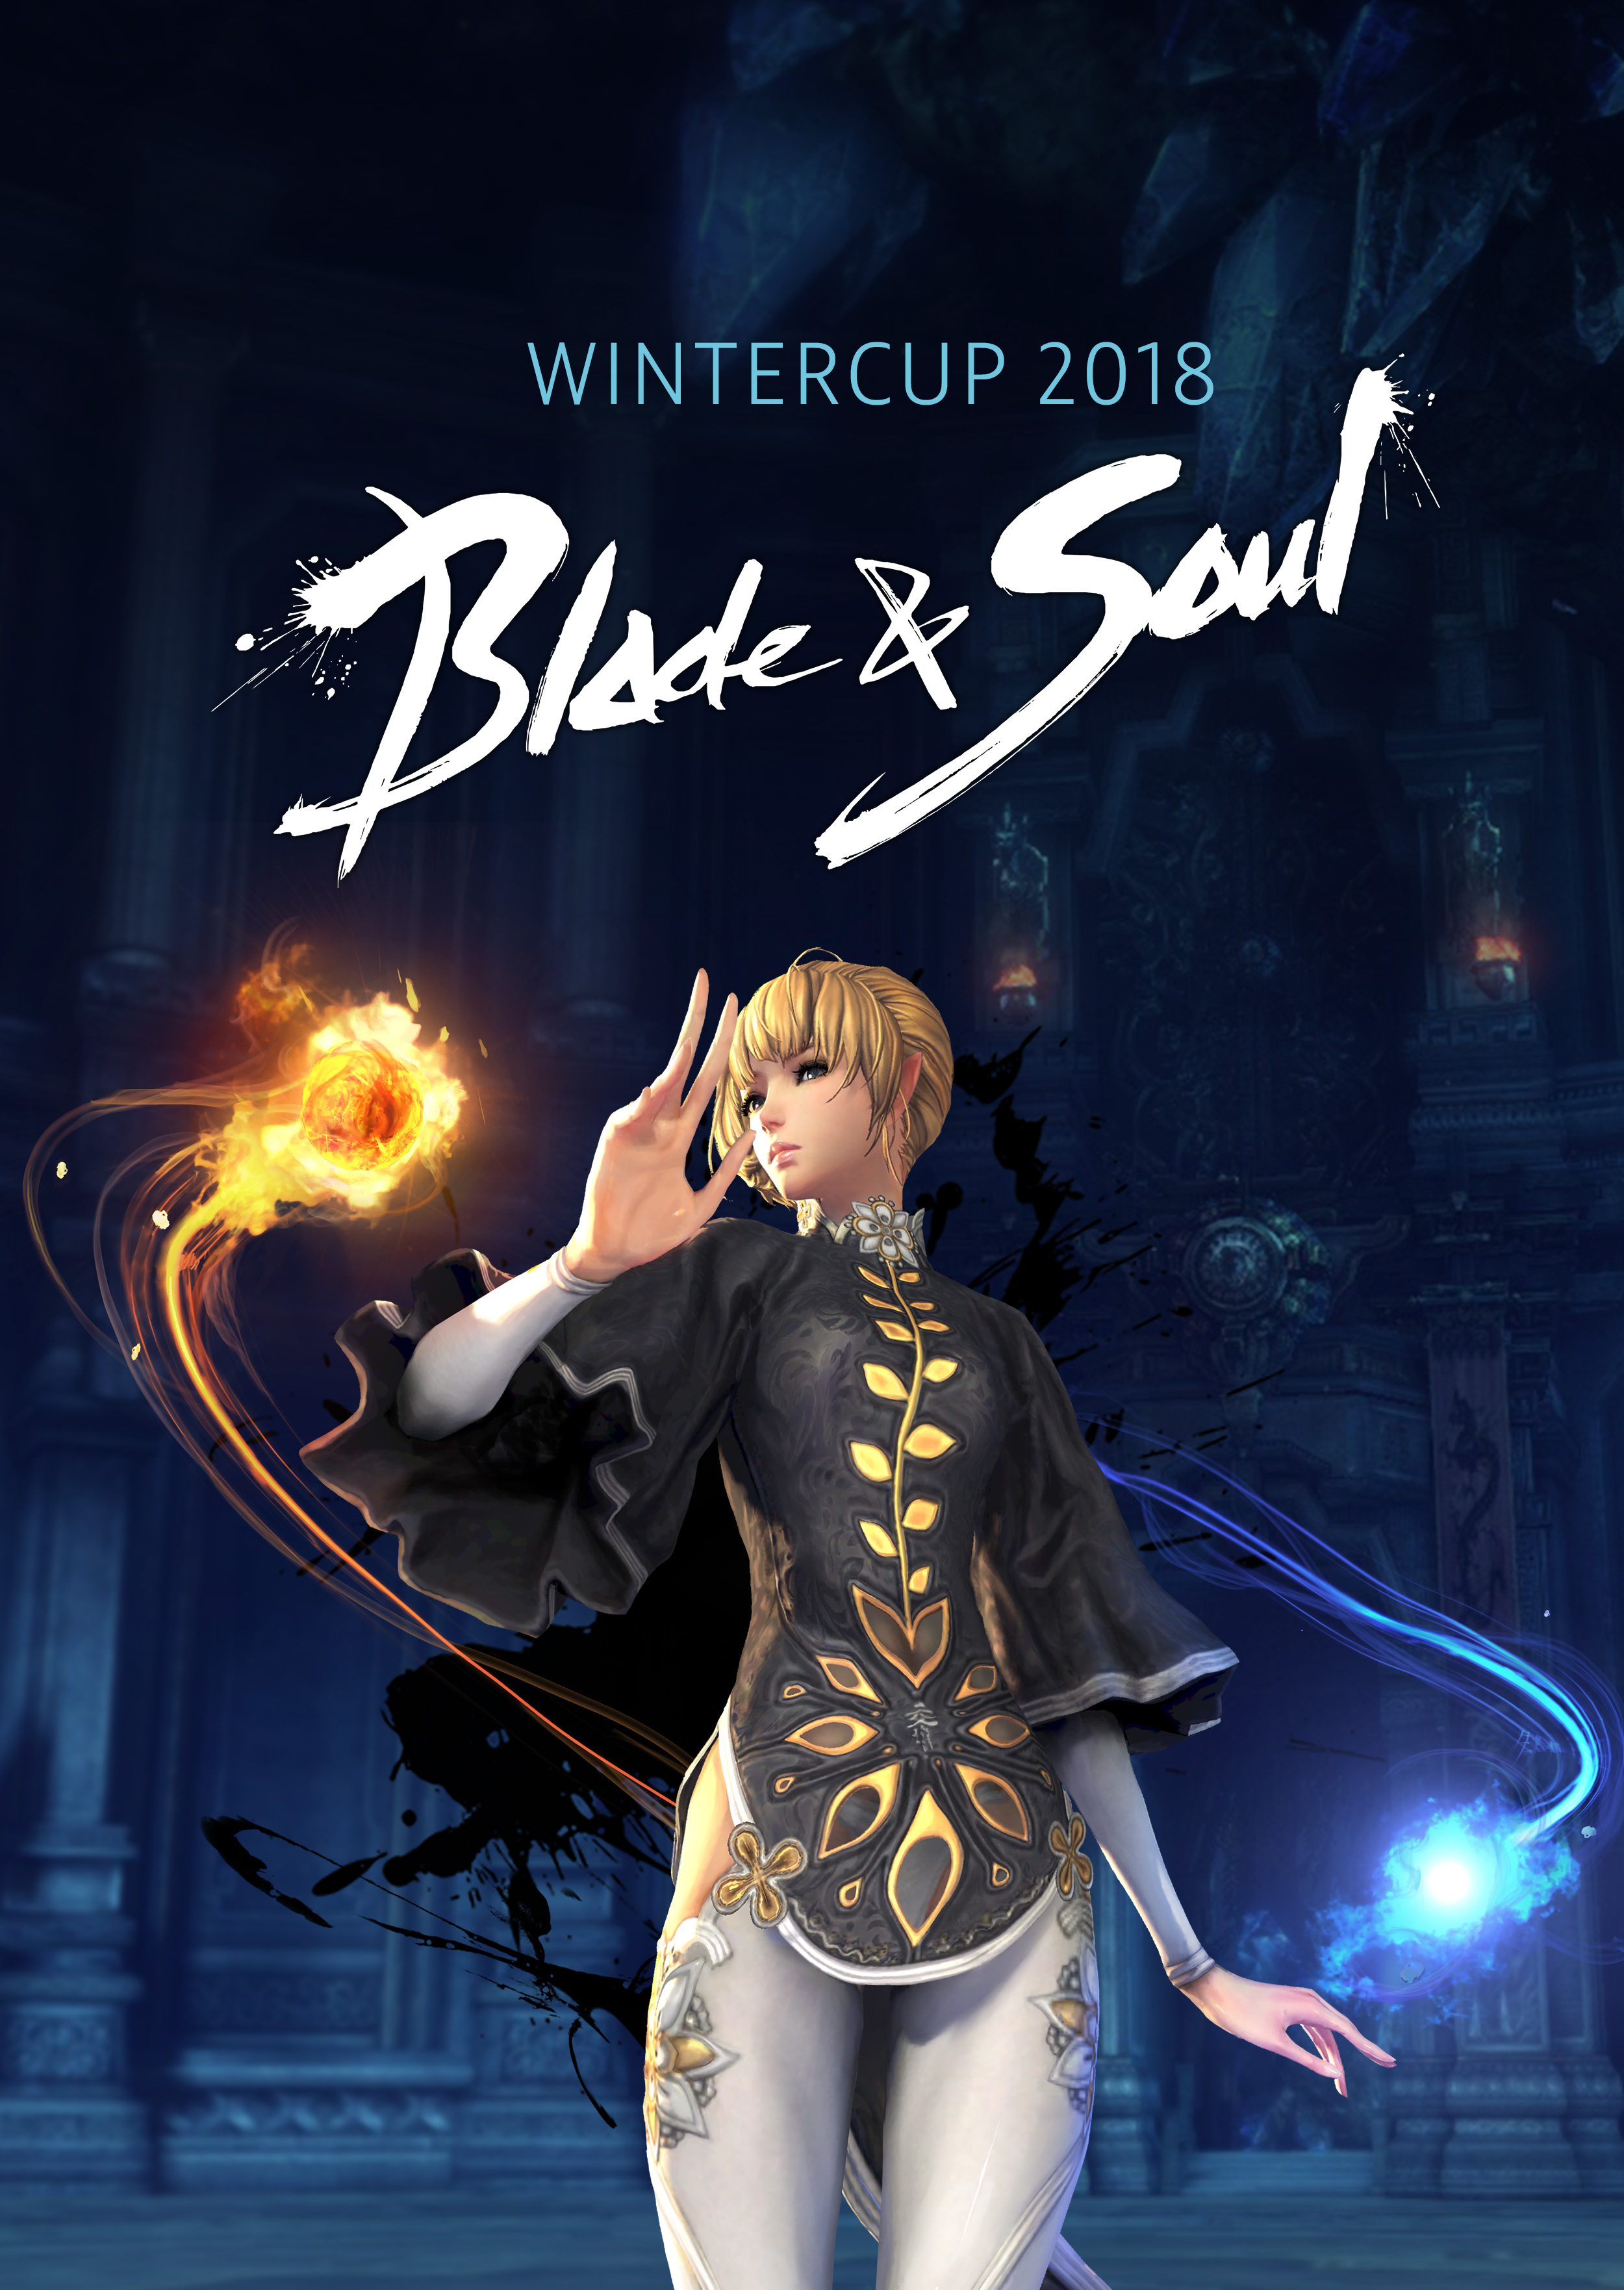 Blade and Soul WinterCup 2018